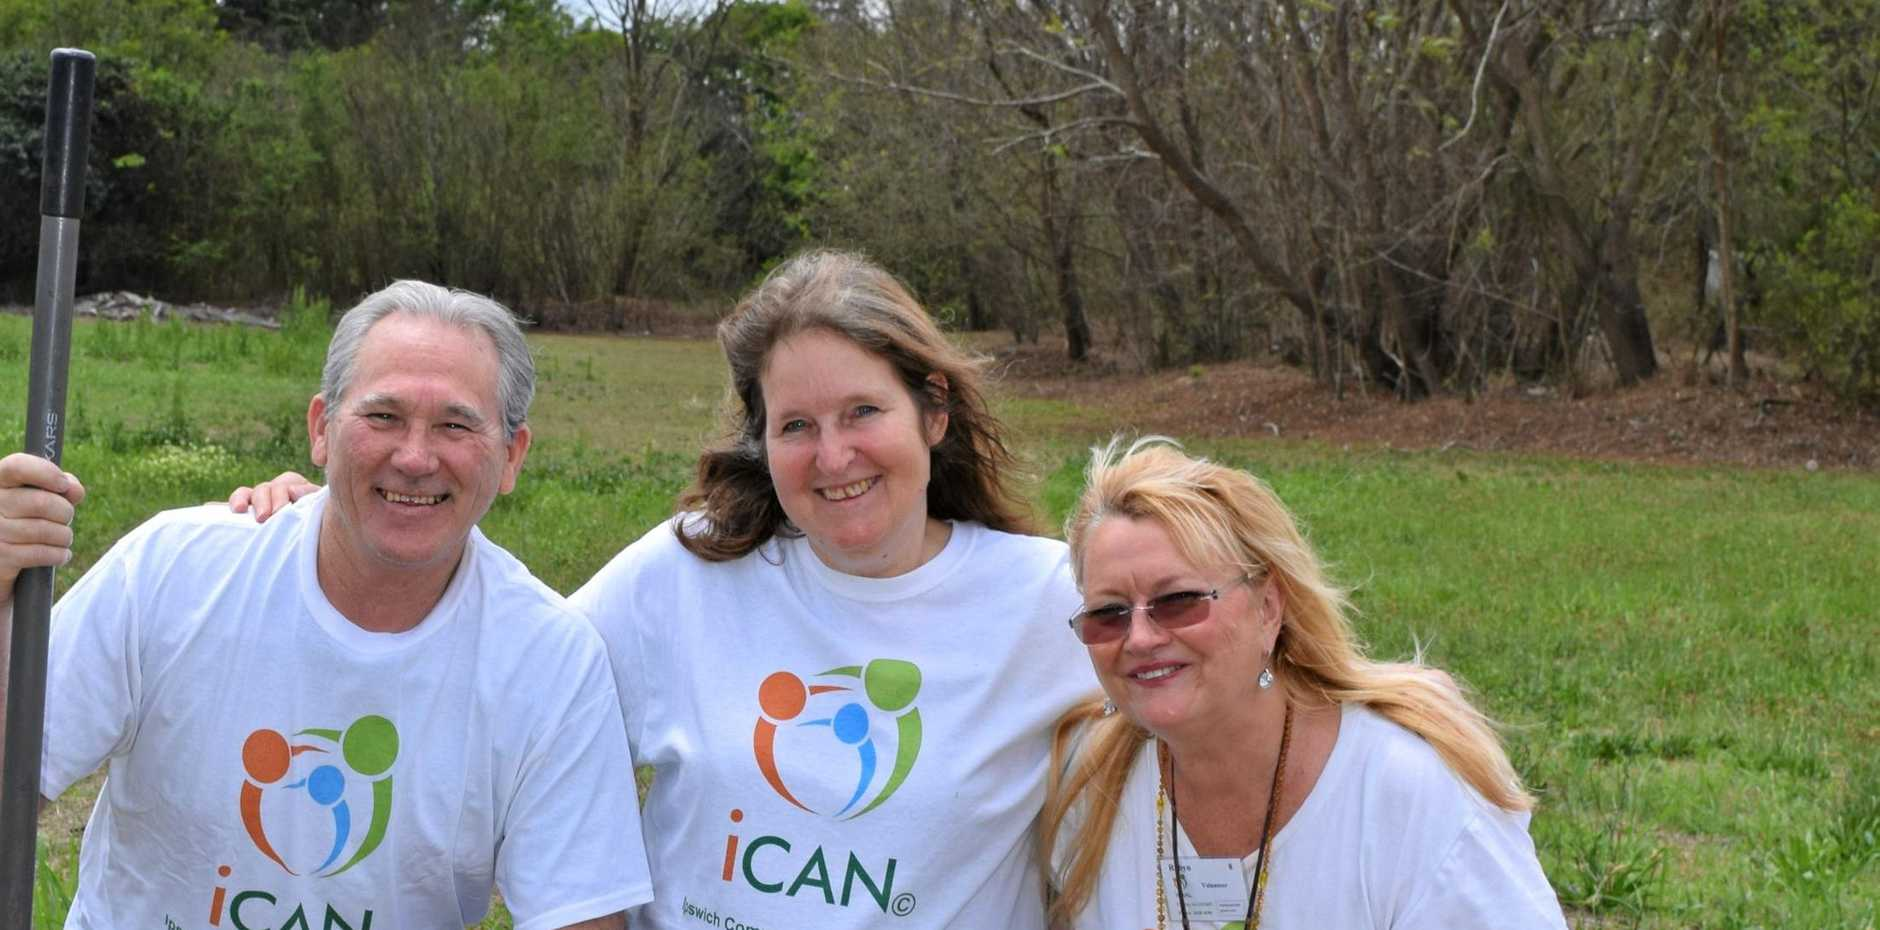 Mike Mcinnes, Conny Turni and Robyn Copper on the land which will become the new iCan community garden in West Ipswich.